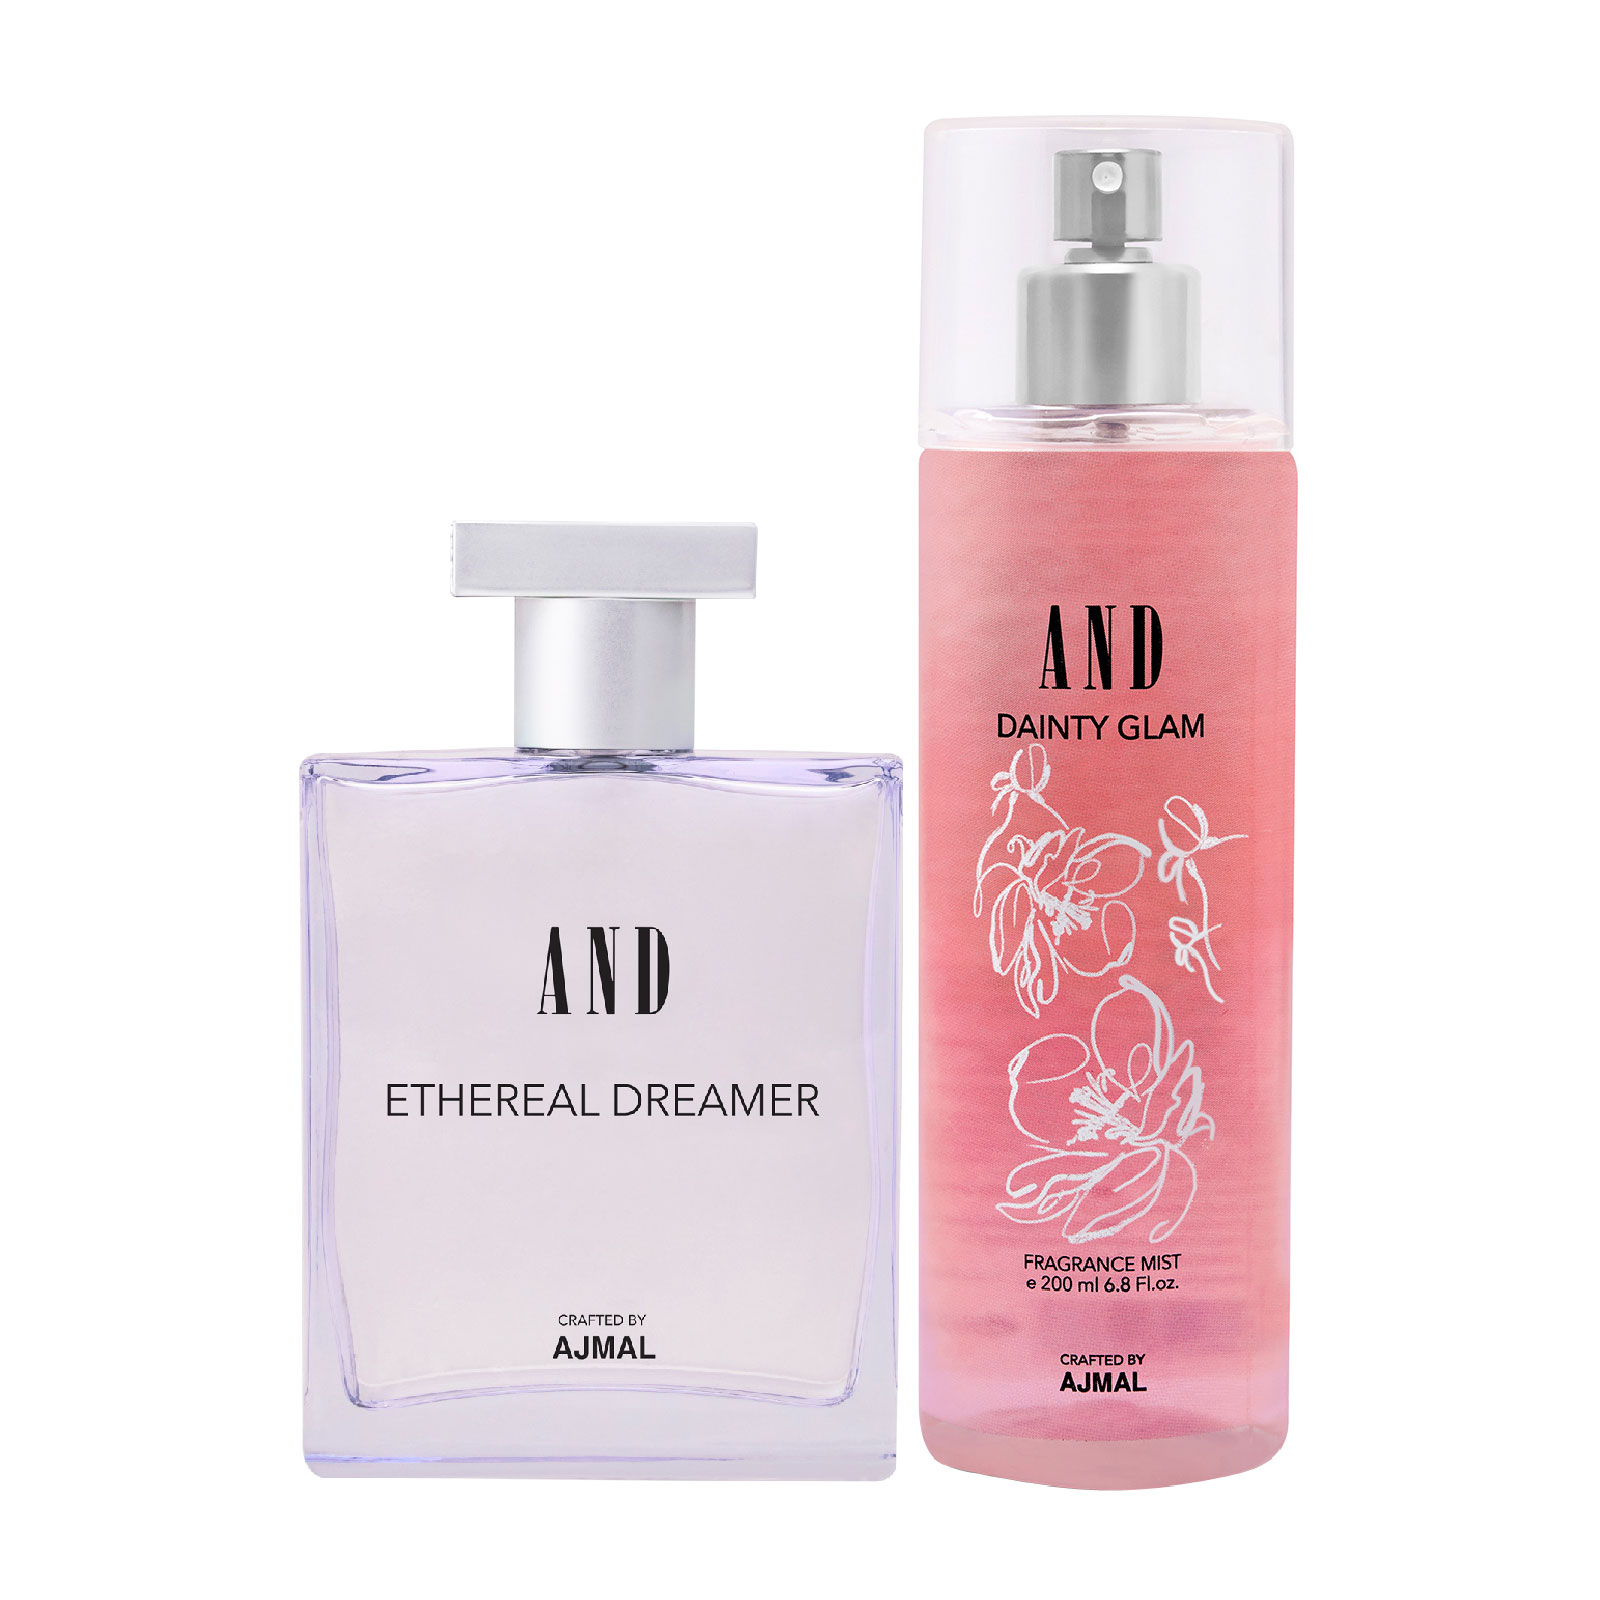 AND Crafted By Ajmal | AND Ethereal Dreamer EDP 100ML & Dainty Glam Body Mist 200ML Pack of 2 for Women Crafted by Ajmal + 2 Parfum Testers